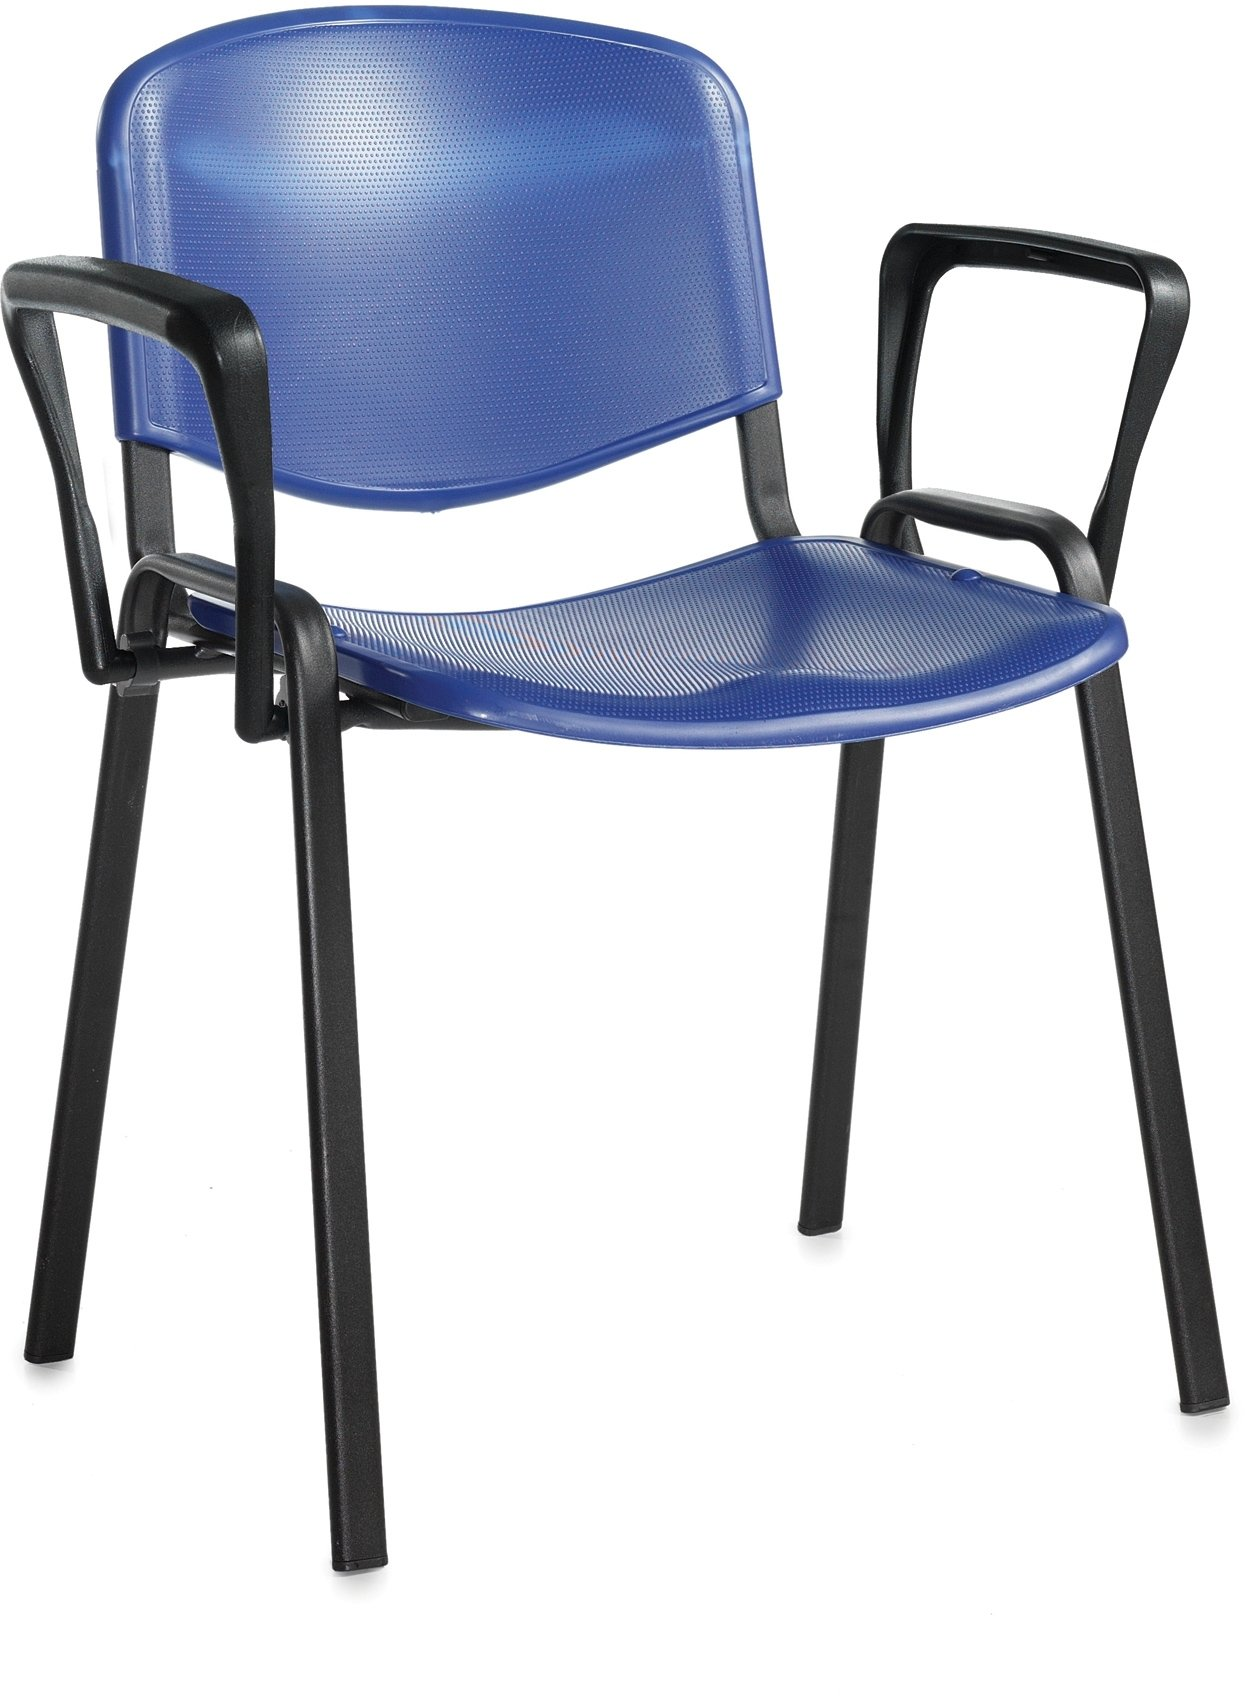 Taurus plastic stacking chair with arms price per box of